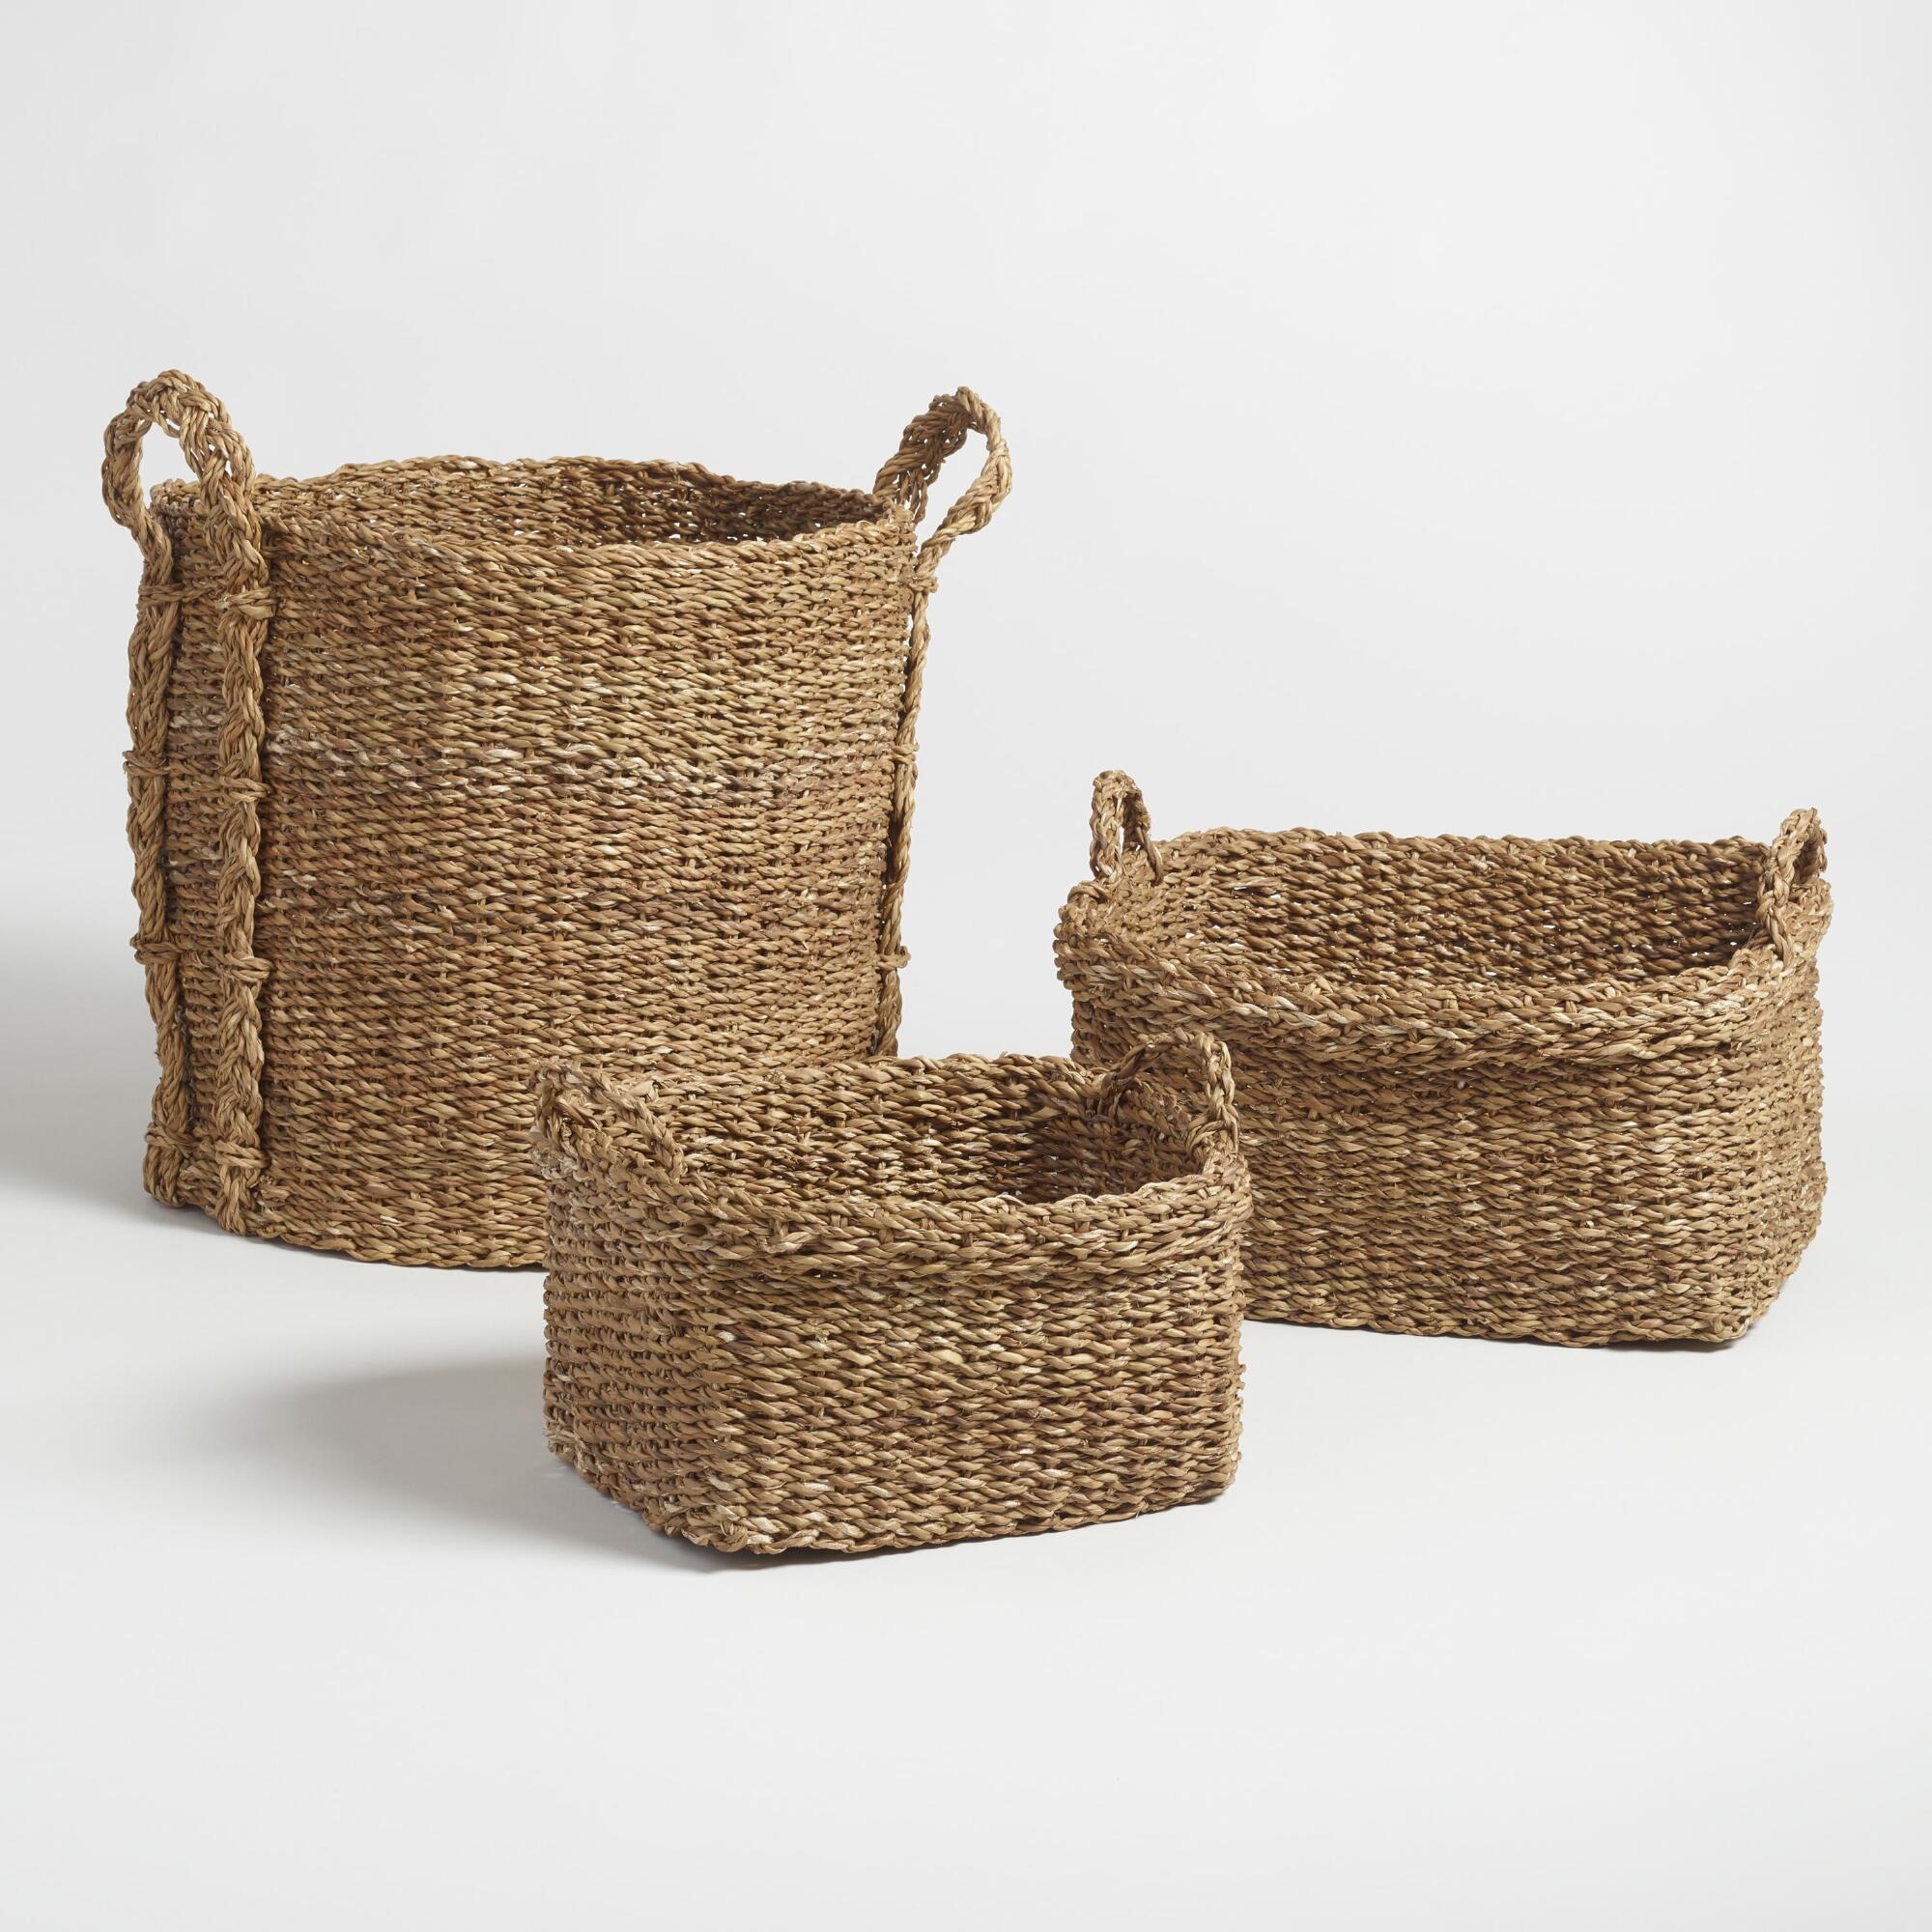 Home underbed storage baskets wicker underbed storage basket - Natural Seagrass Aurora Tote Baskets